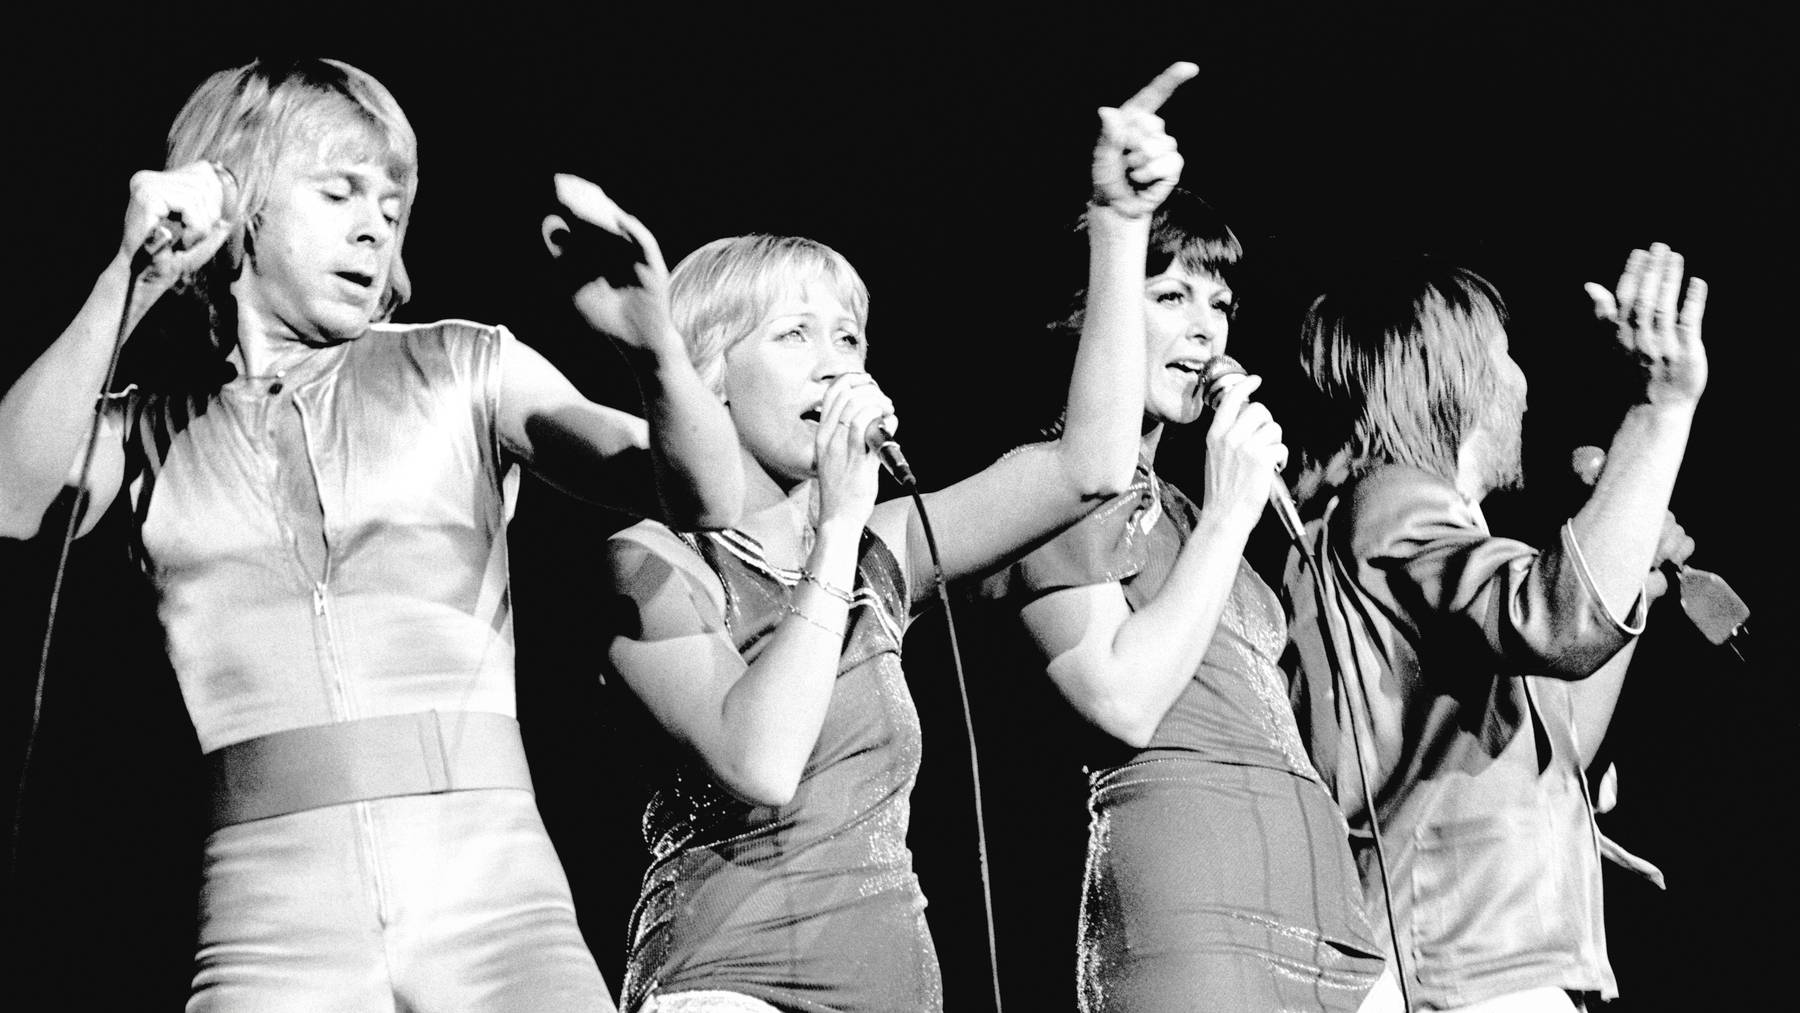 Bjorn Ulvaeus, Agnetha Faltskog, Anni-Frid Lyngstad and Benny Andersson of ABBA perform on stage at the Wembley Arena, London, England, on November 5th, 1979.